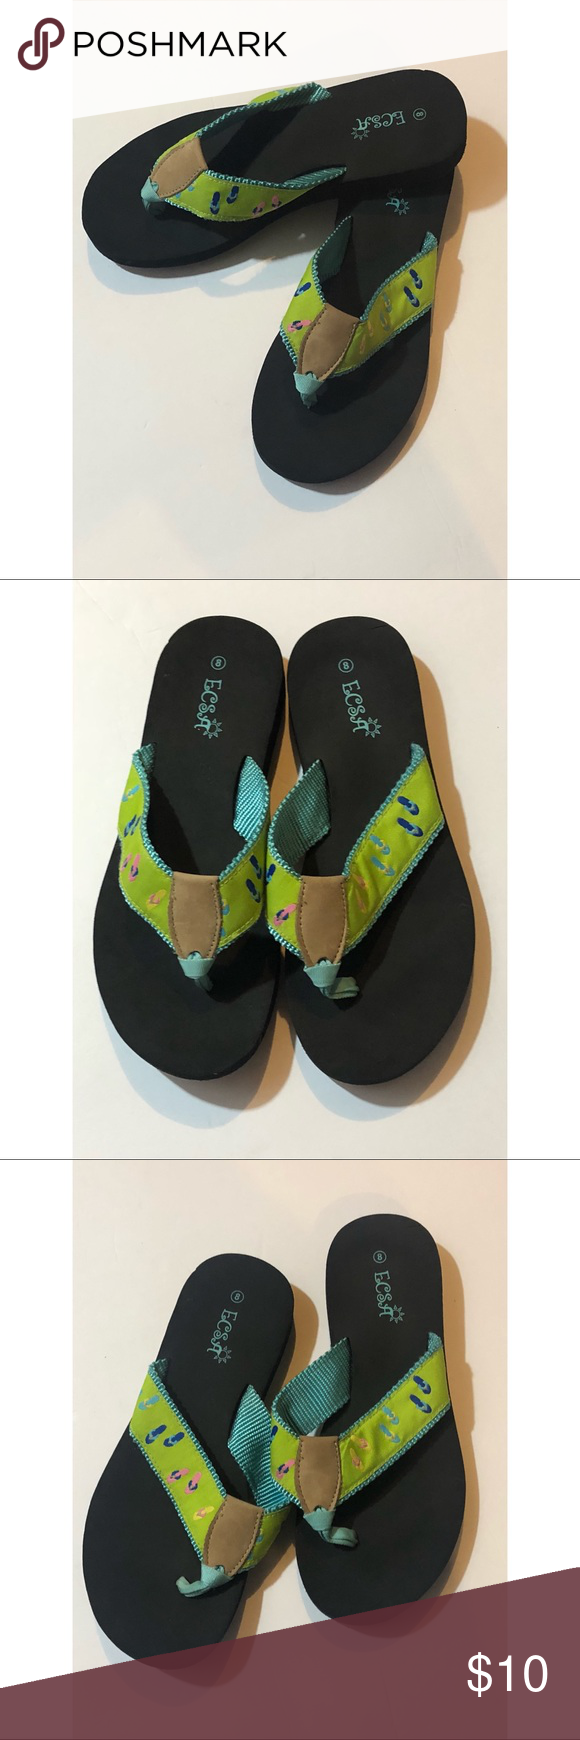 b559630ce08c Bottom is Black with Lime Green and Light Teal top decorated with colorful flip  flops Pre-owned in Good Condition Size 8 ecsa Shoes Sandals